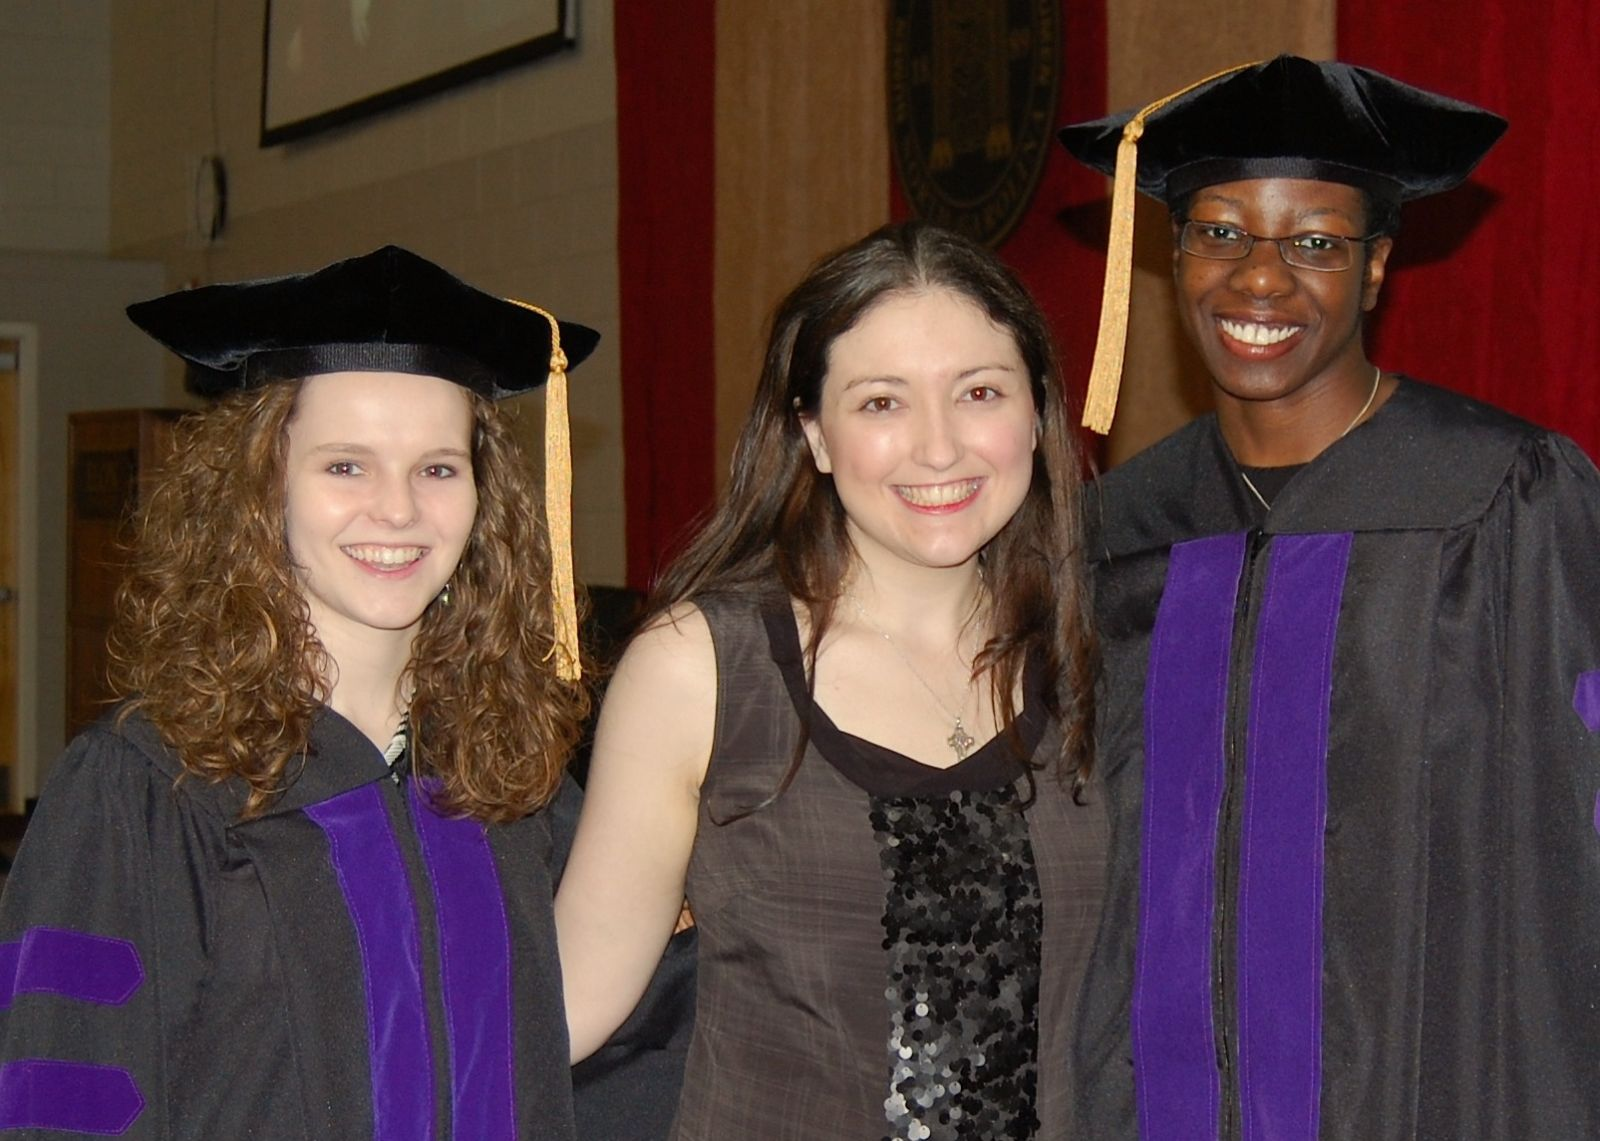 Members of the Elon Law Class of 2012